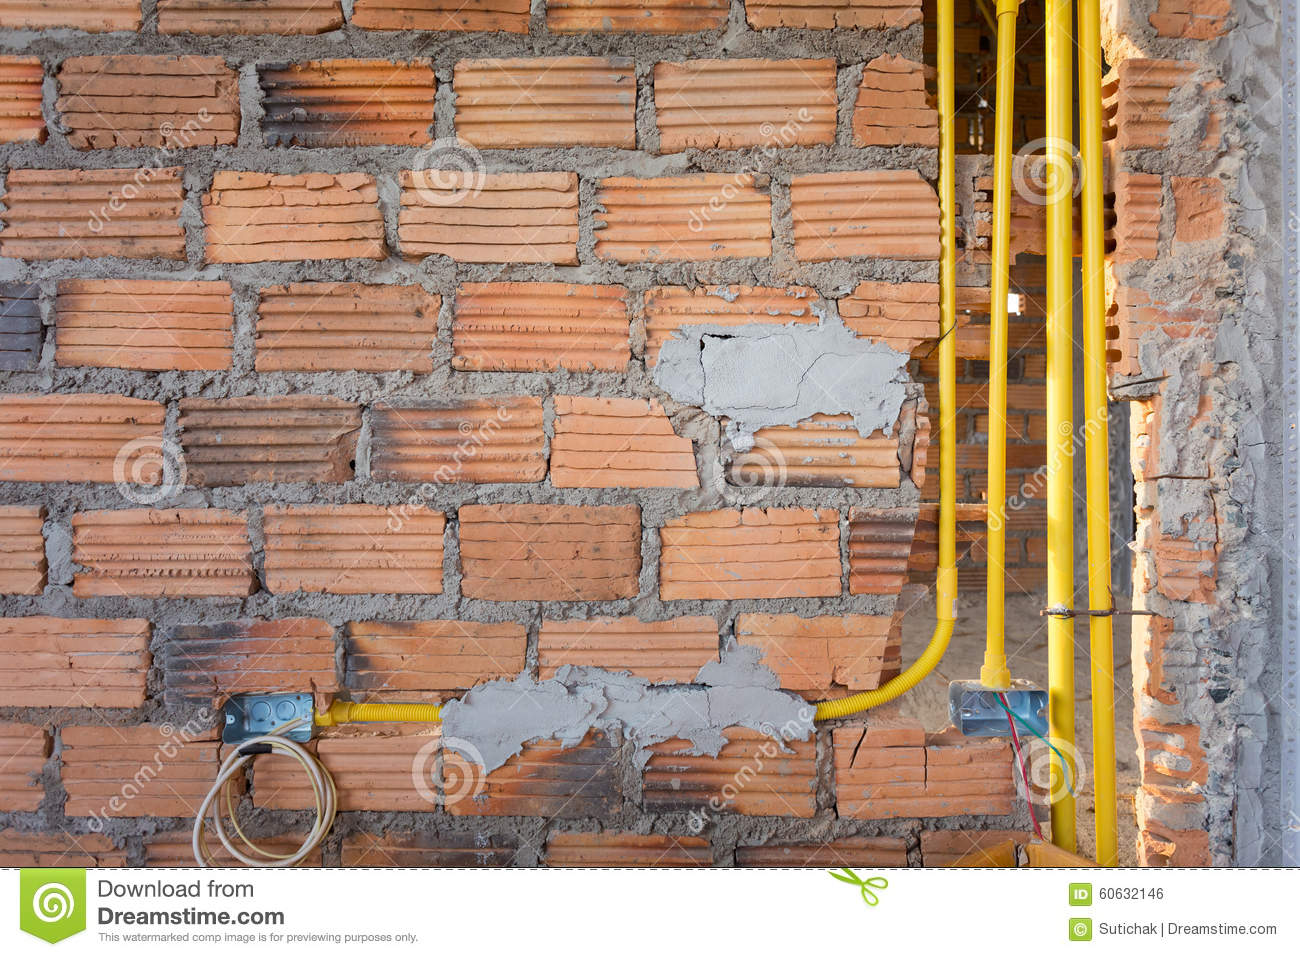 Brick Wall In Residential House Building Construction Site